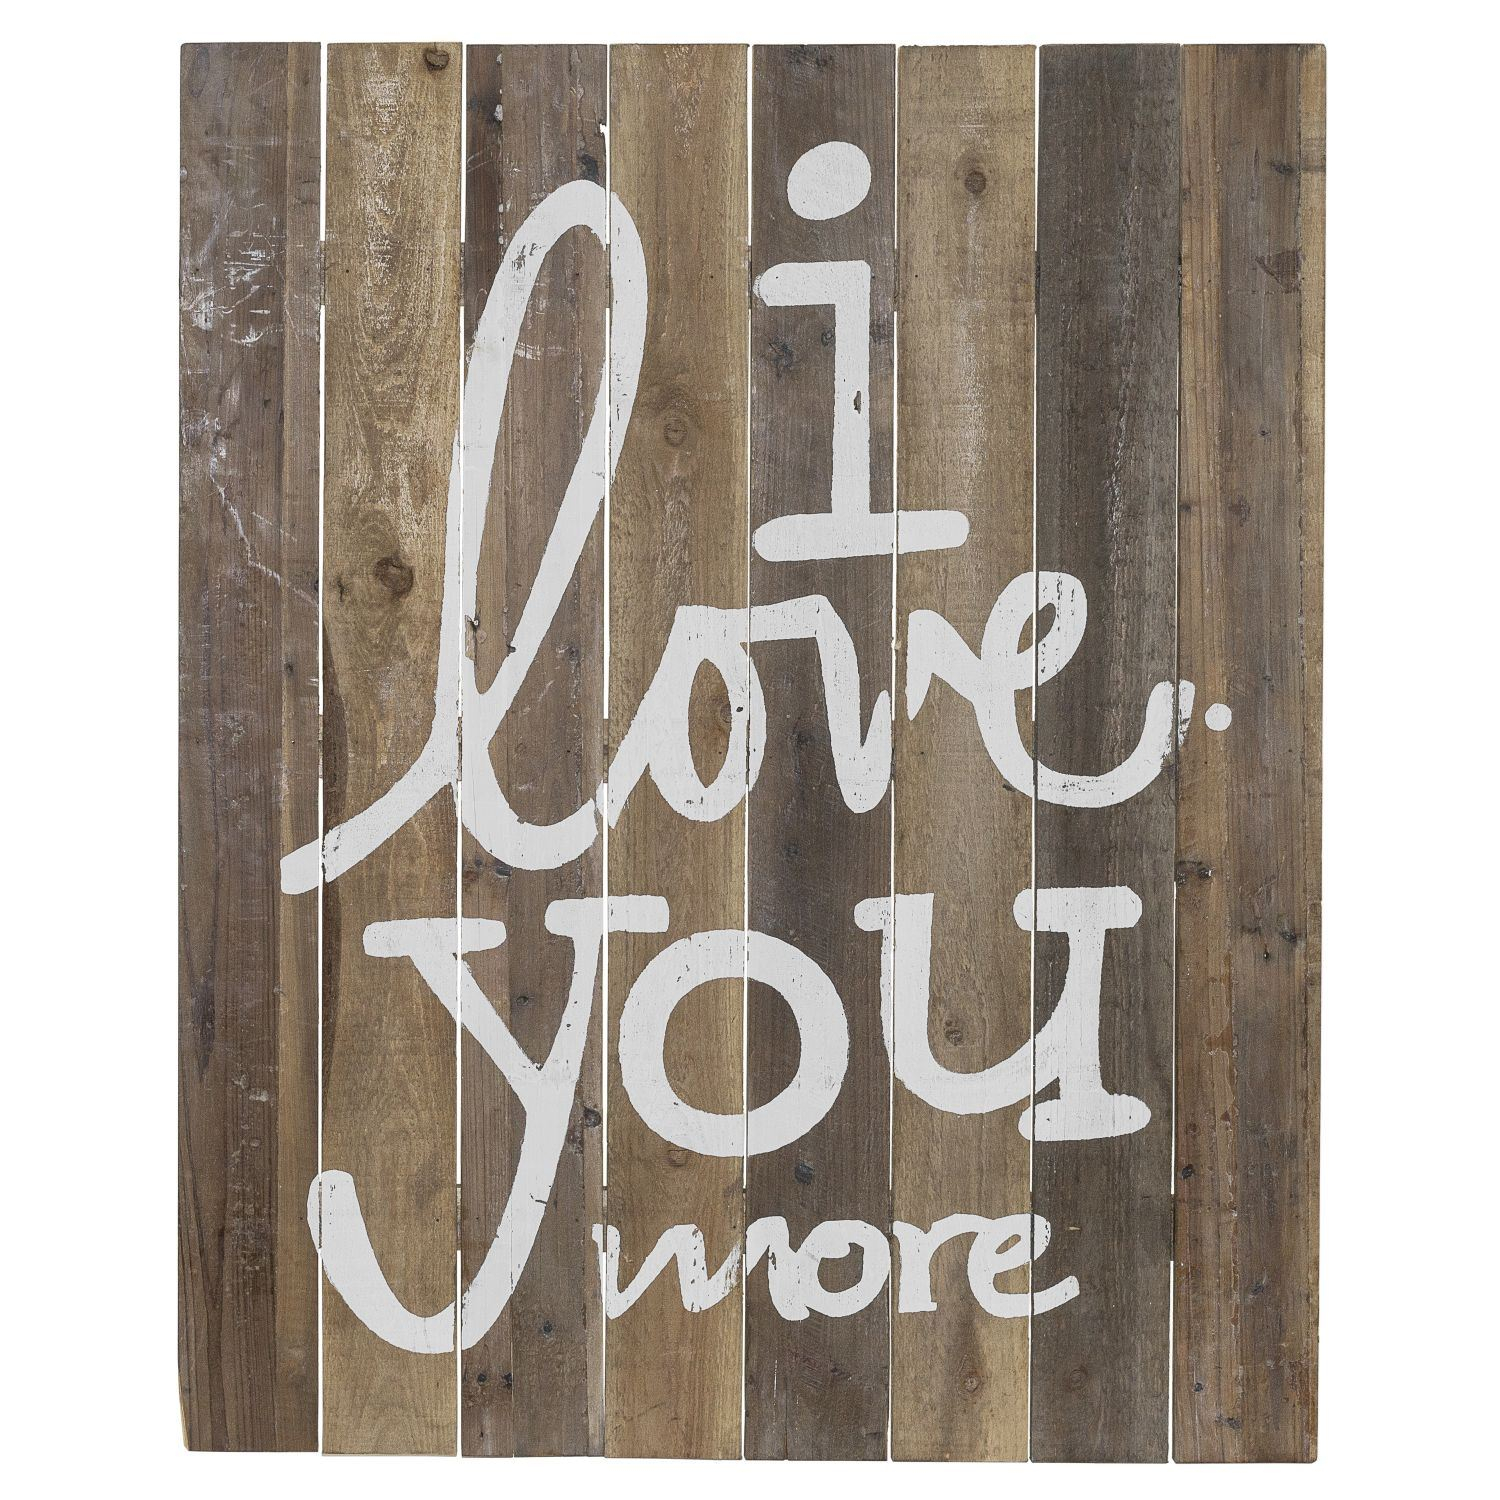 I Love You More Sign in 'Love You More' Wood Wall Decor (Image 12 of 30)